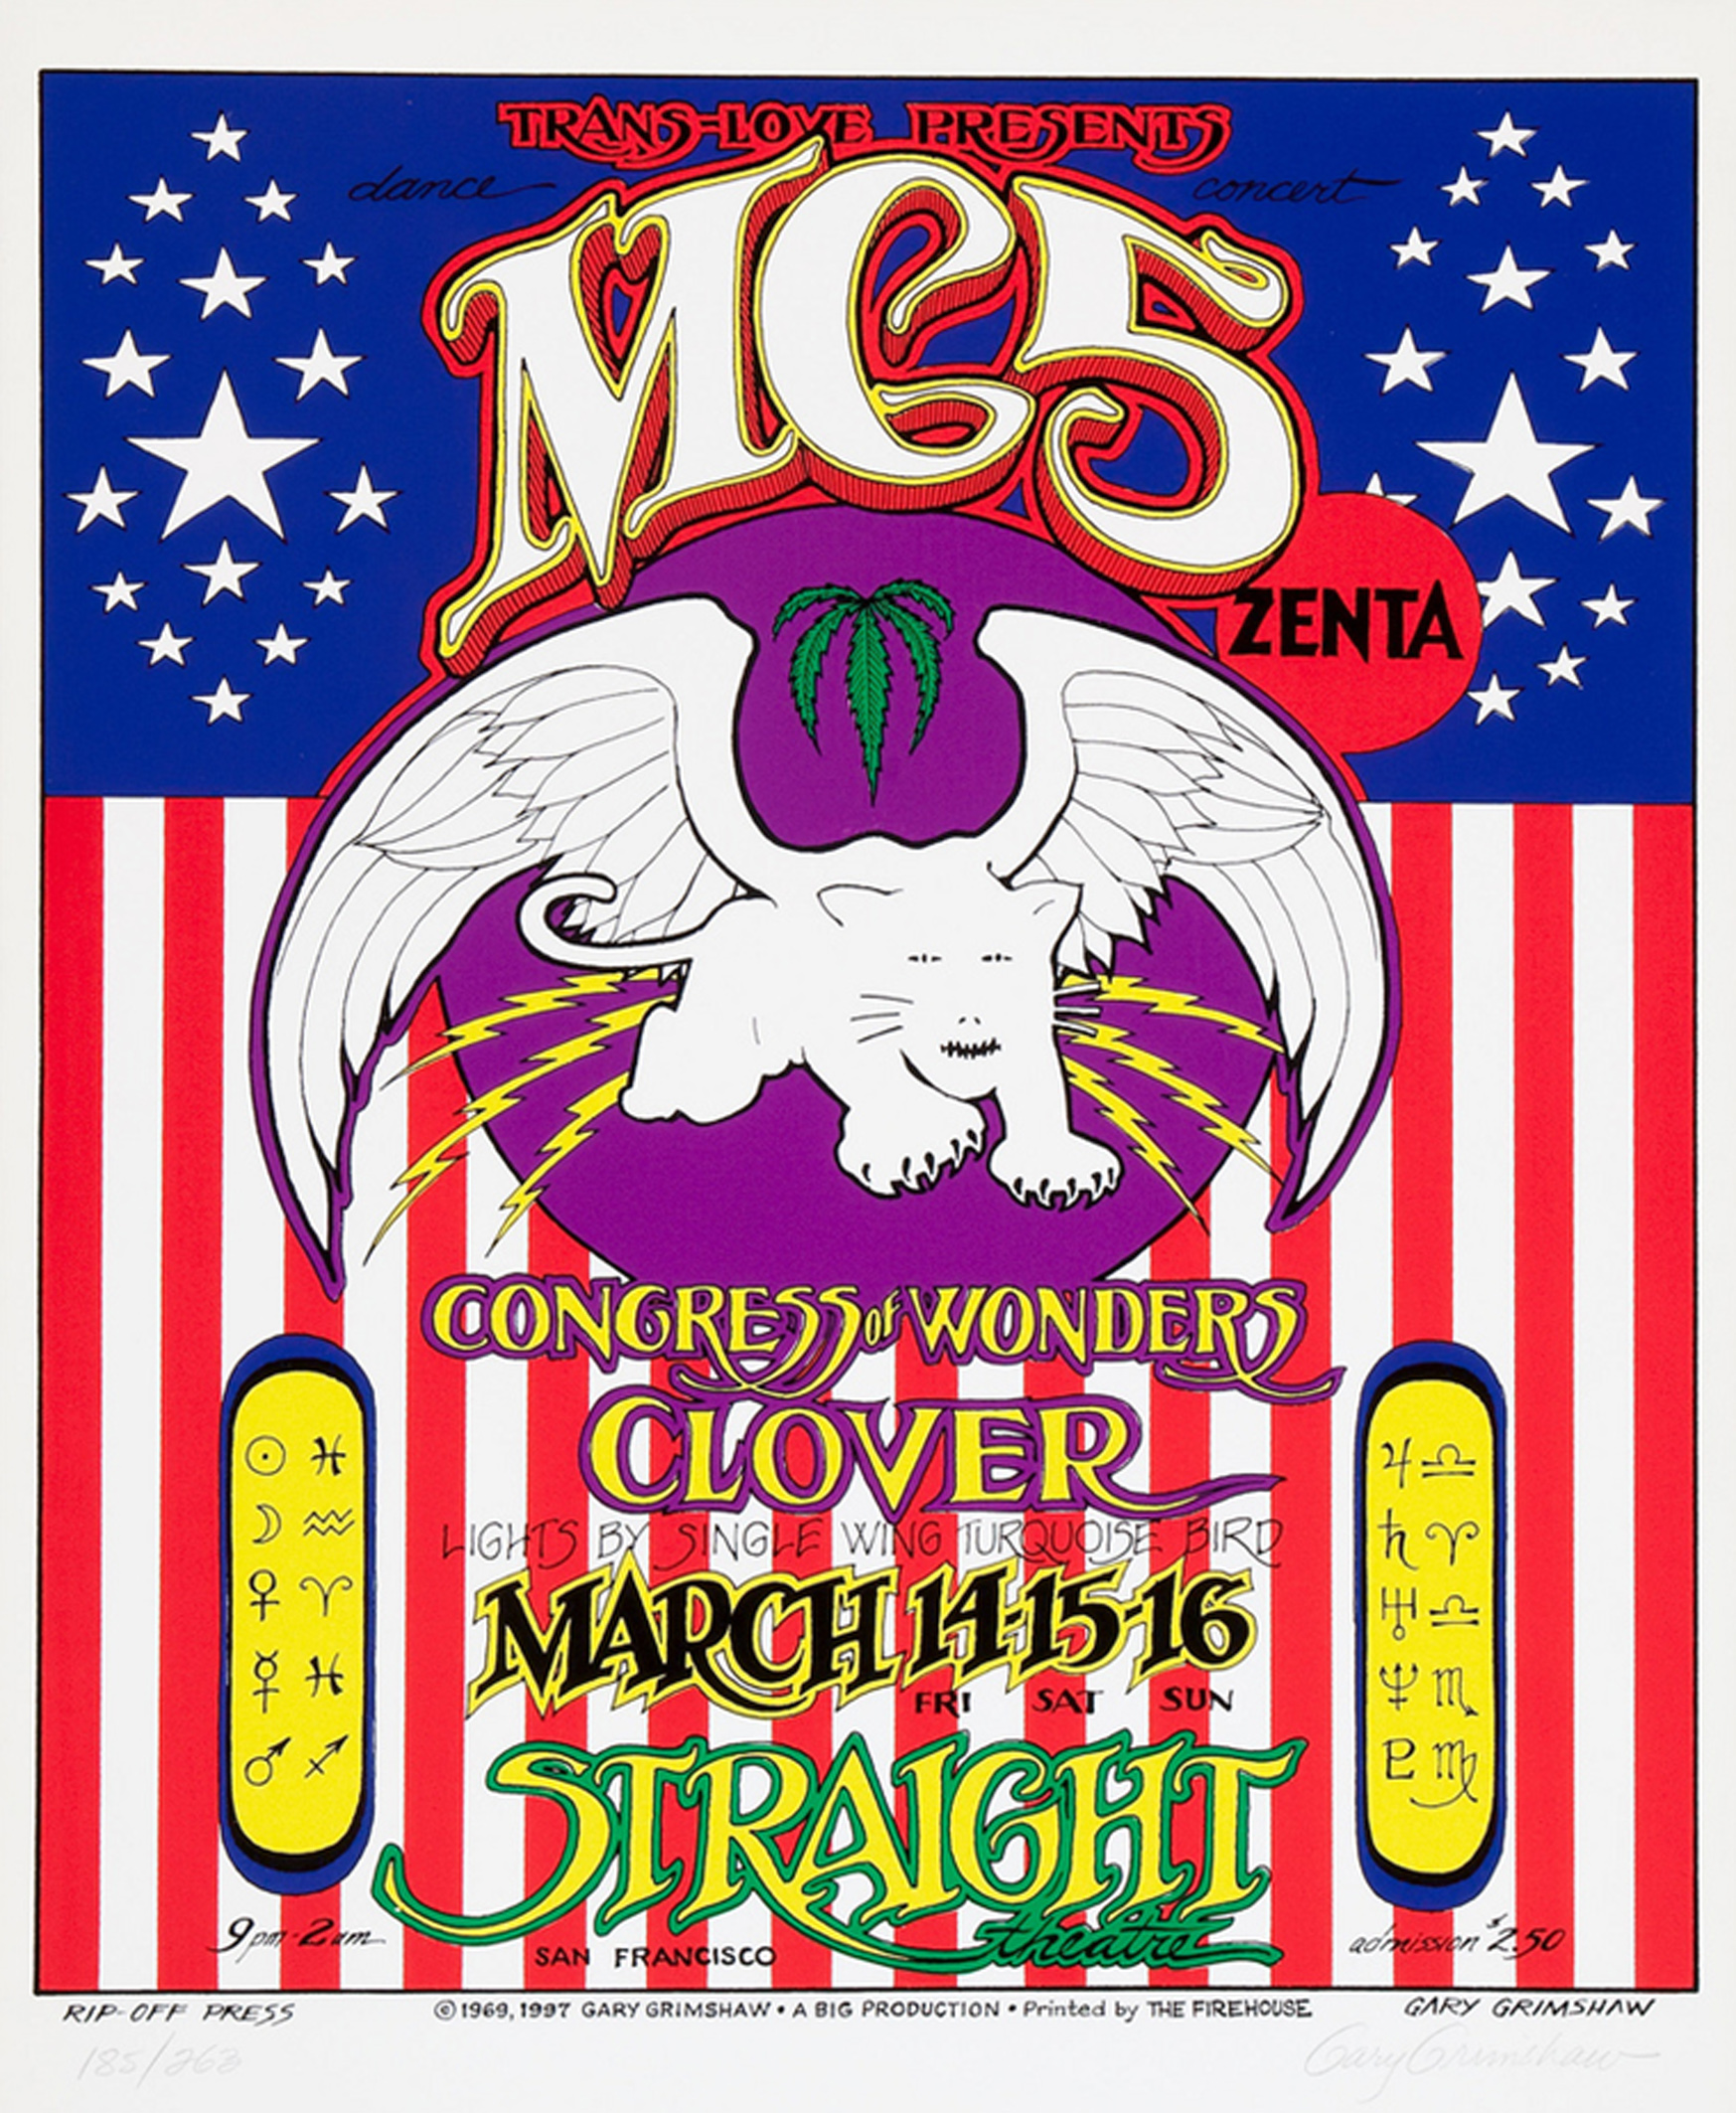 MC5 Straight Theatre (1997)